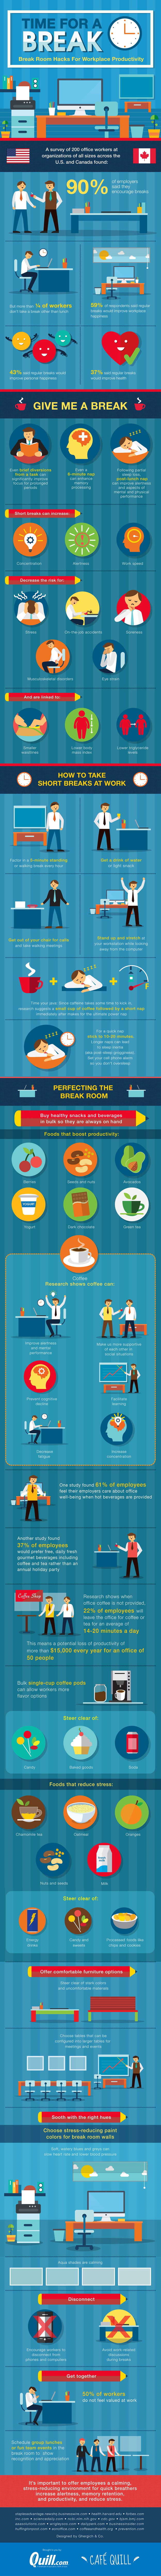 Break Room Hacks for Workplace Productivity